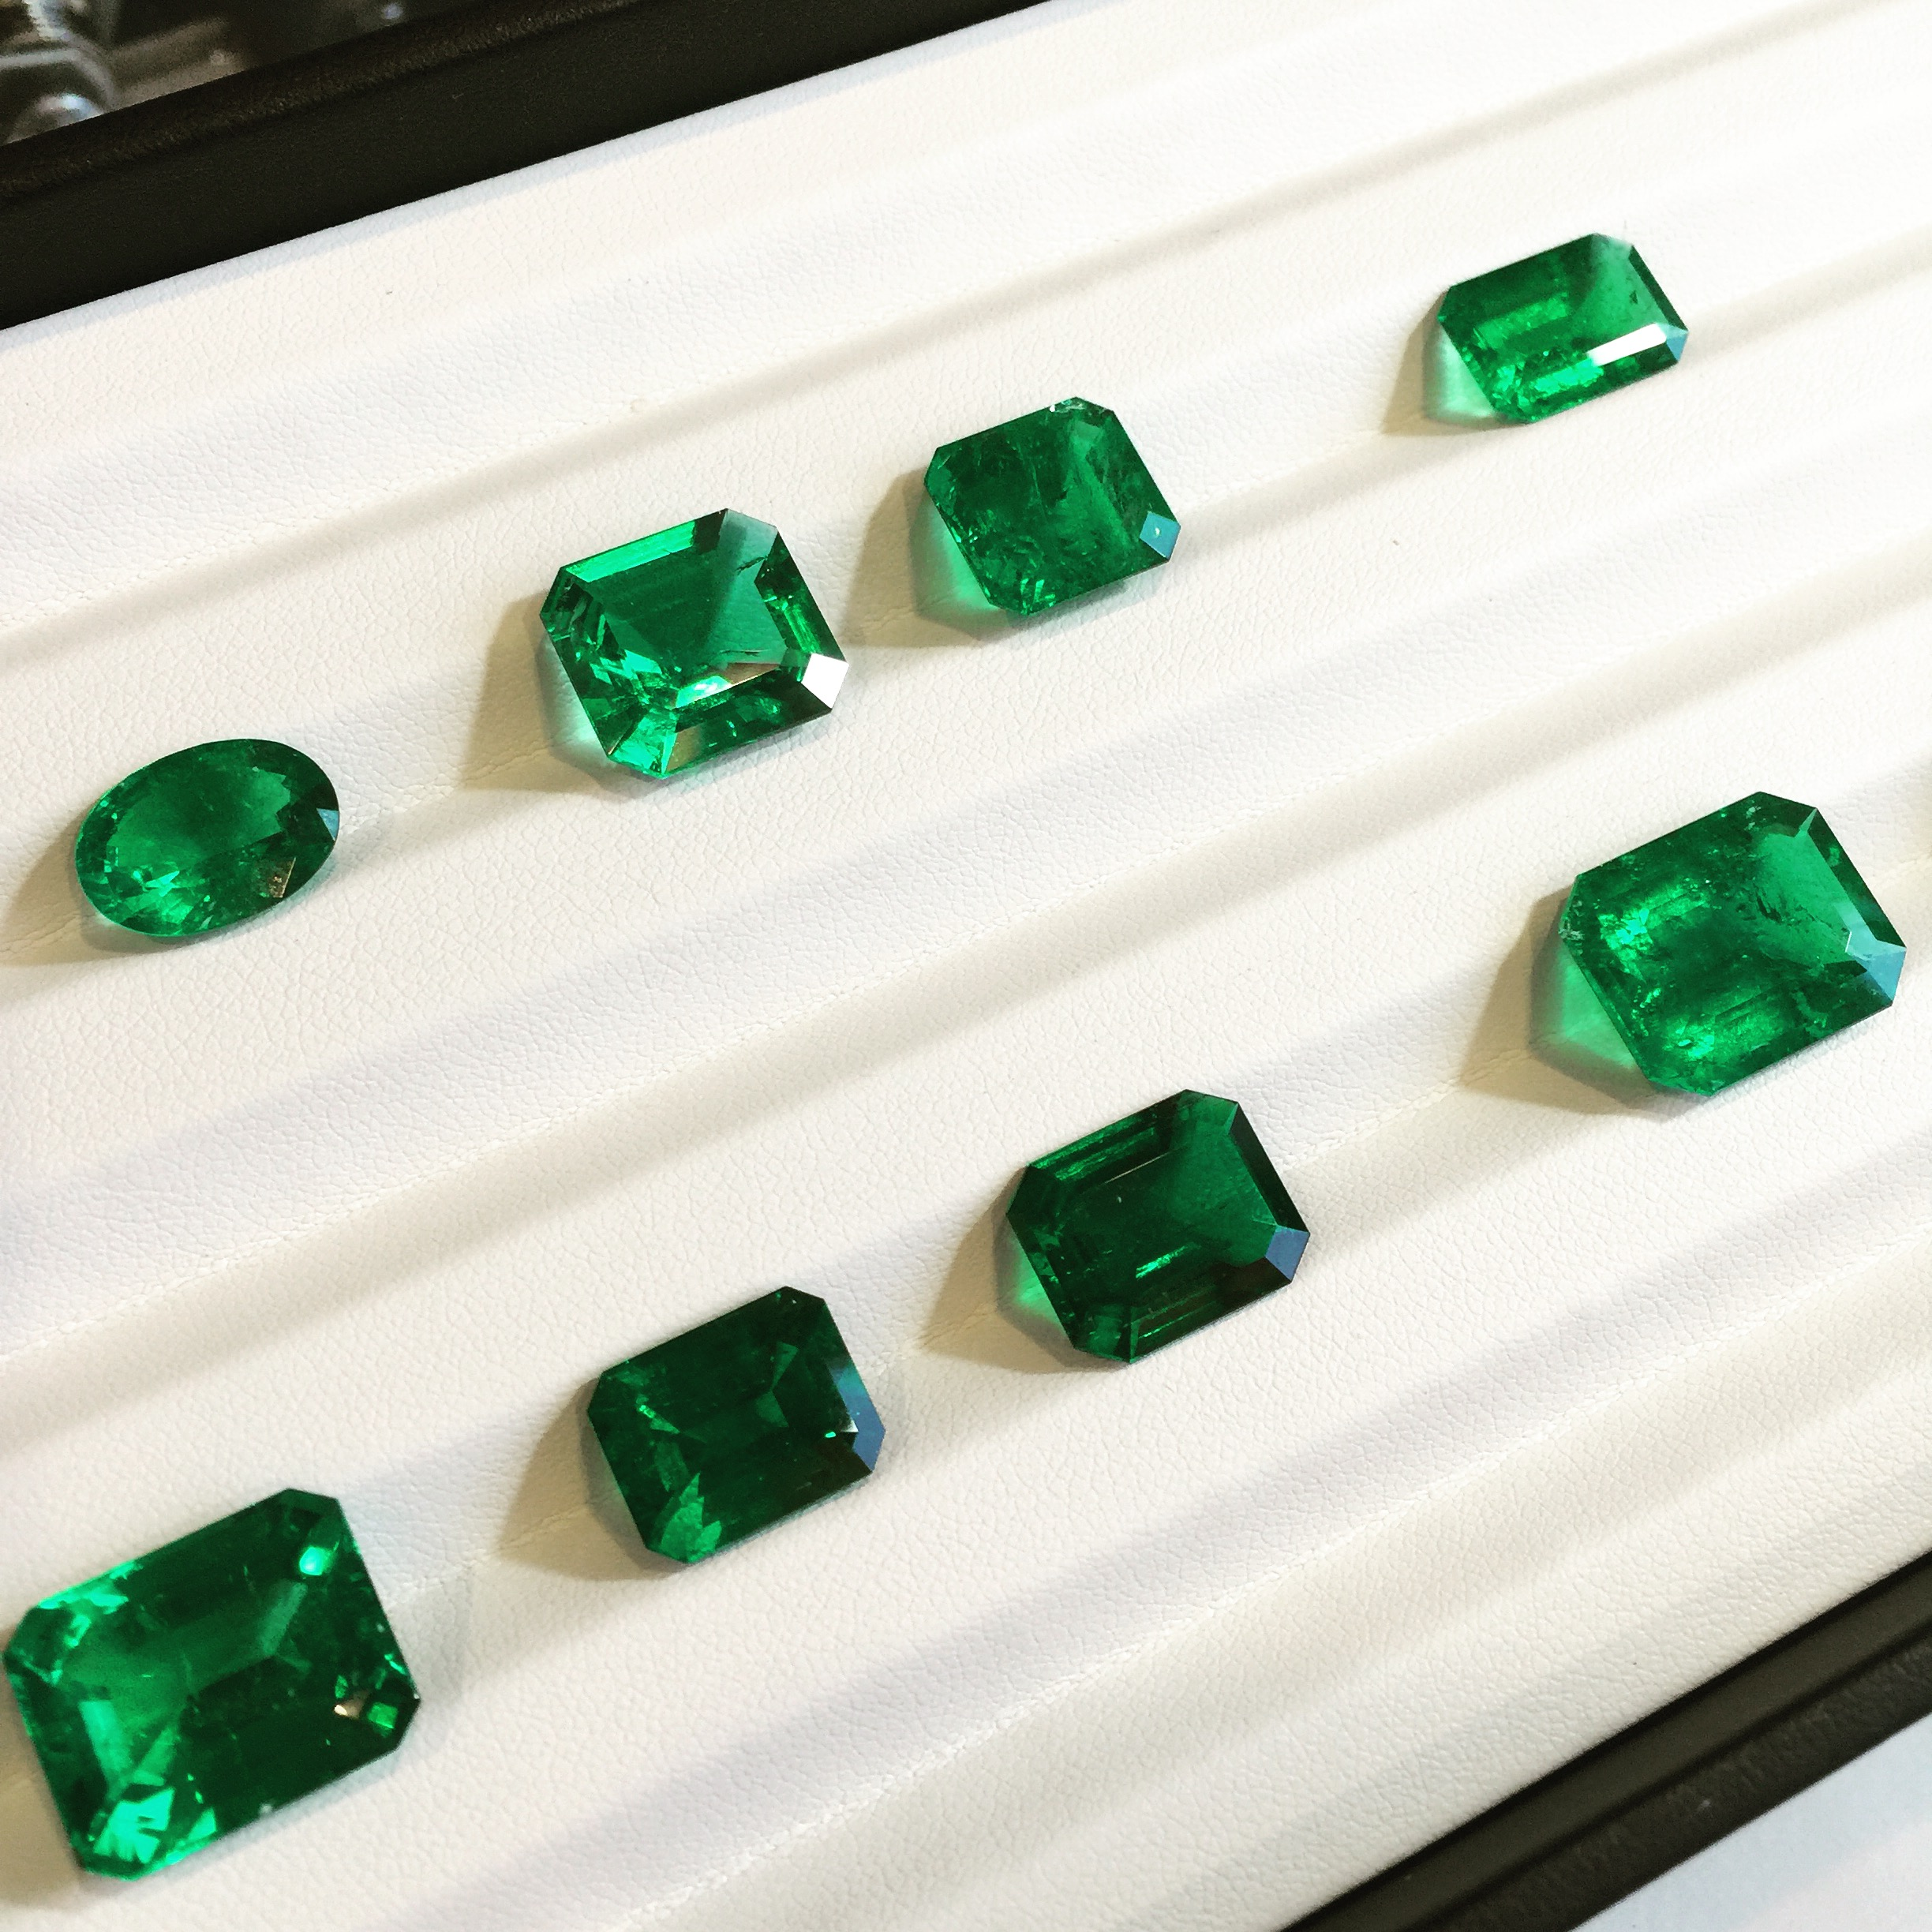 A Gem S Journey Muzo Emeralds From Colombia To Robert